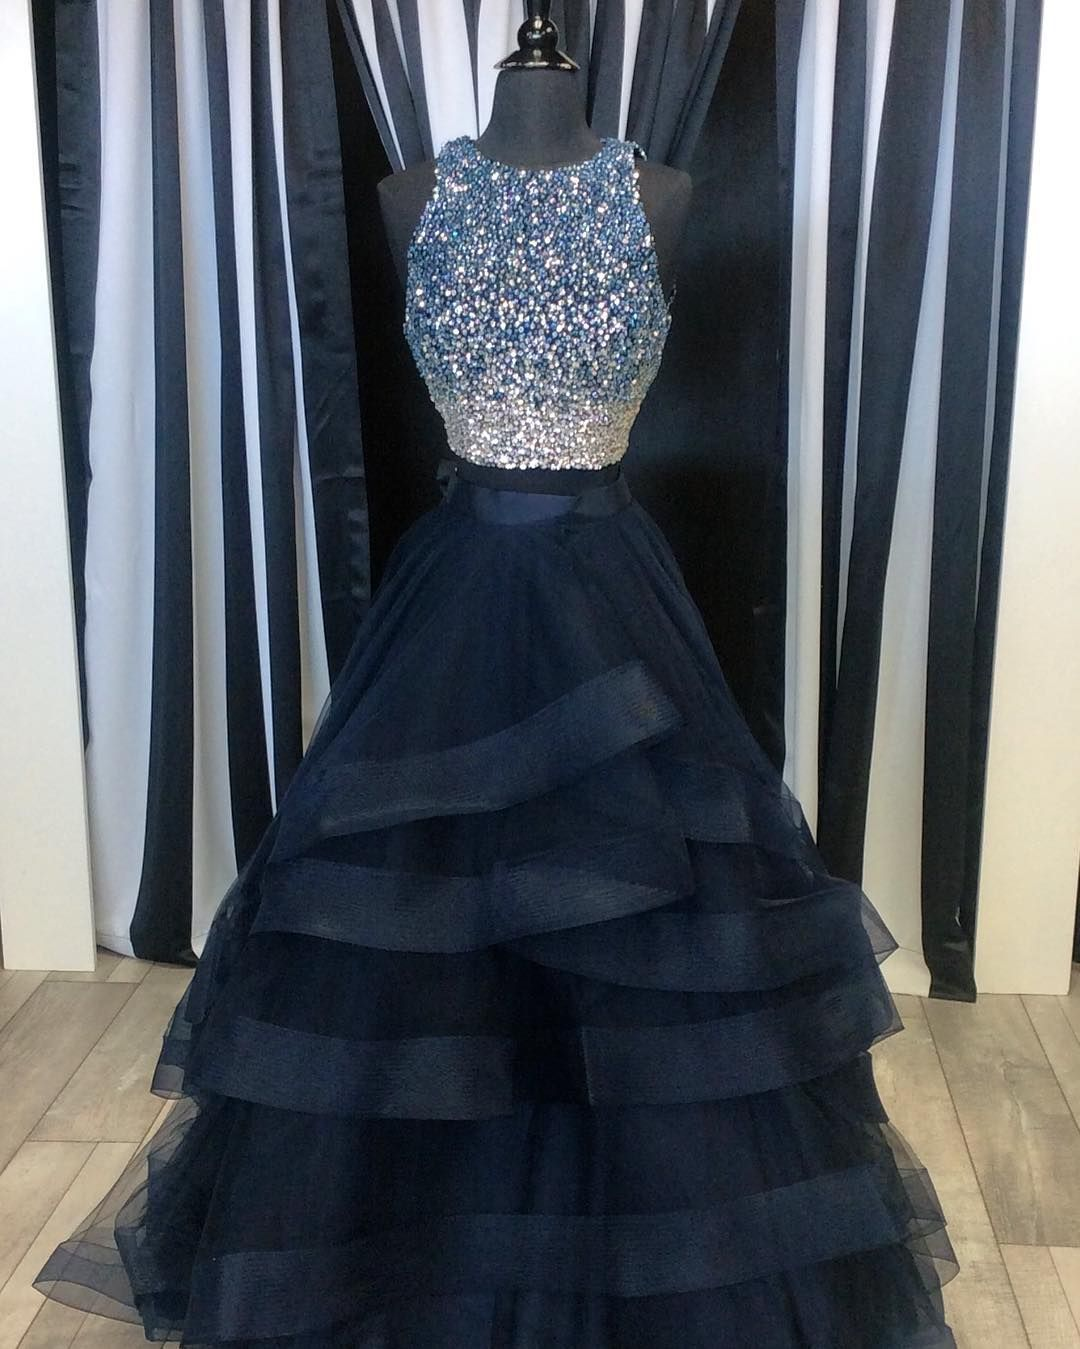 Prom dressesparty dressestwo piece prom dressesruffles ball gowns